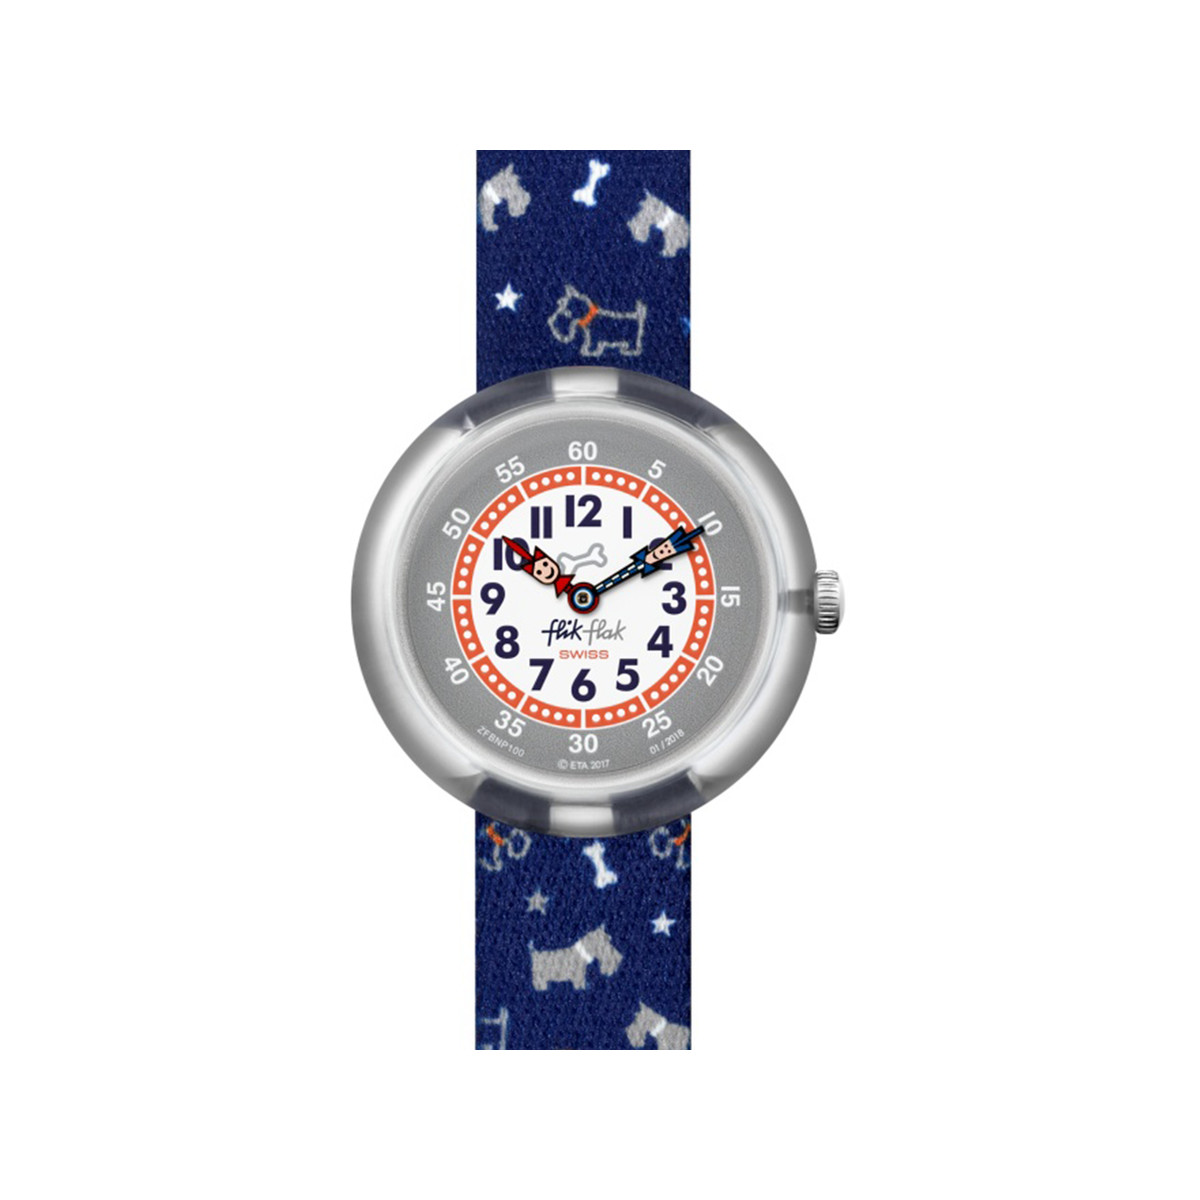 Montre Flik Flak mixte Scott'n'terry - vue V1